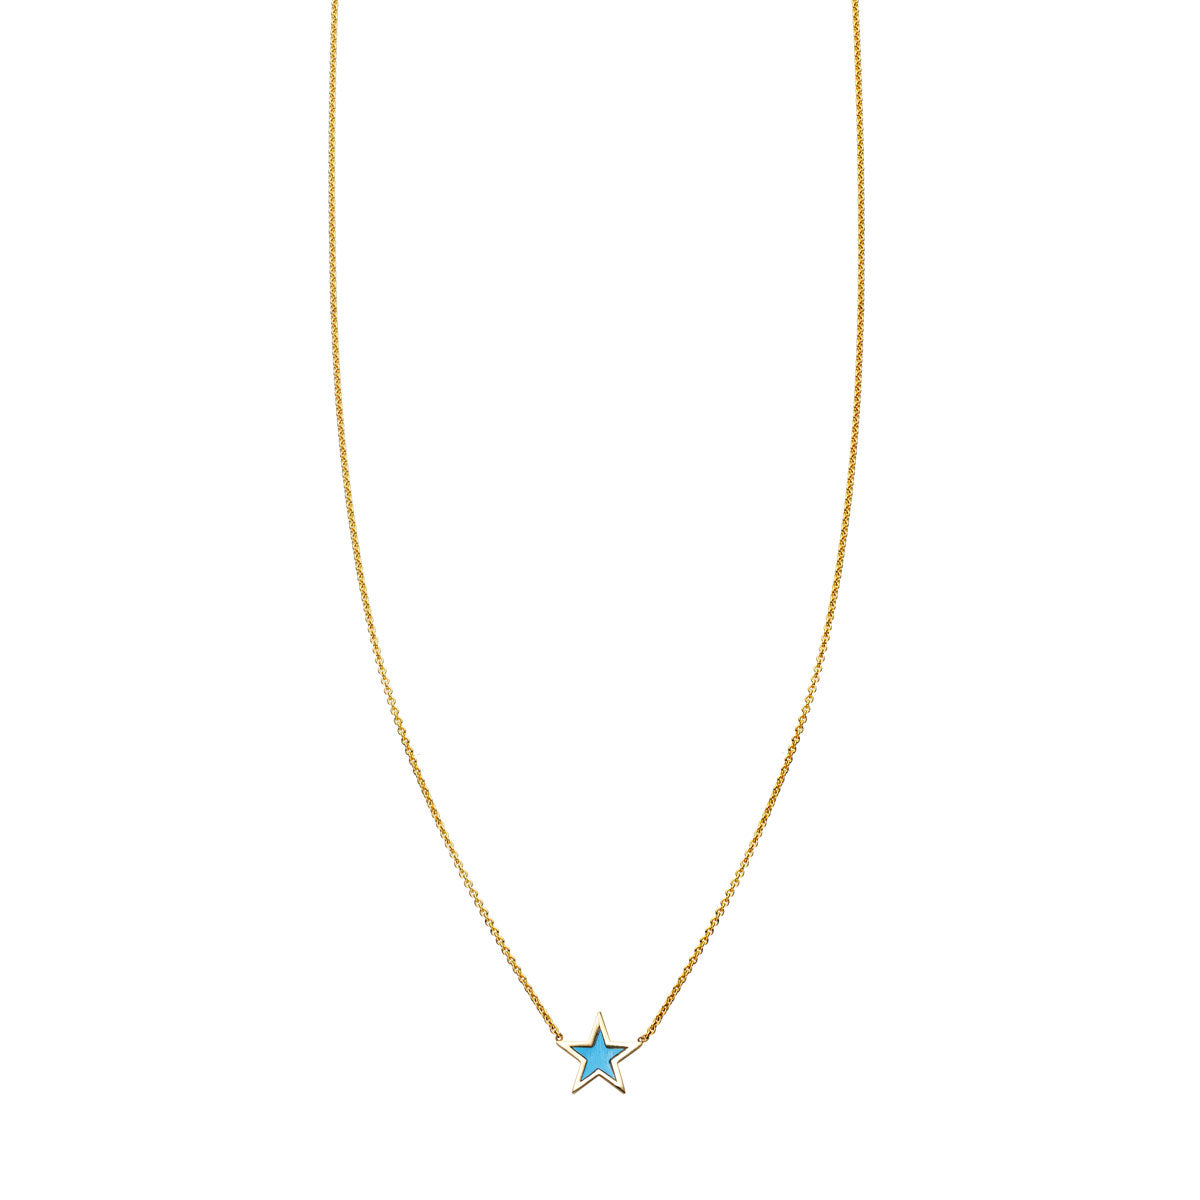 Image of Turquoise Inlaid Star Necklace